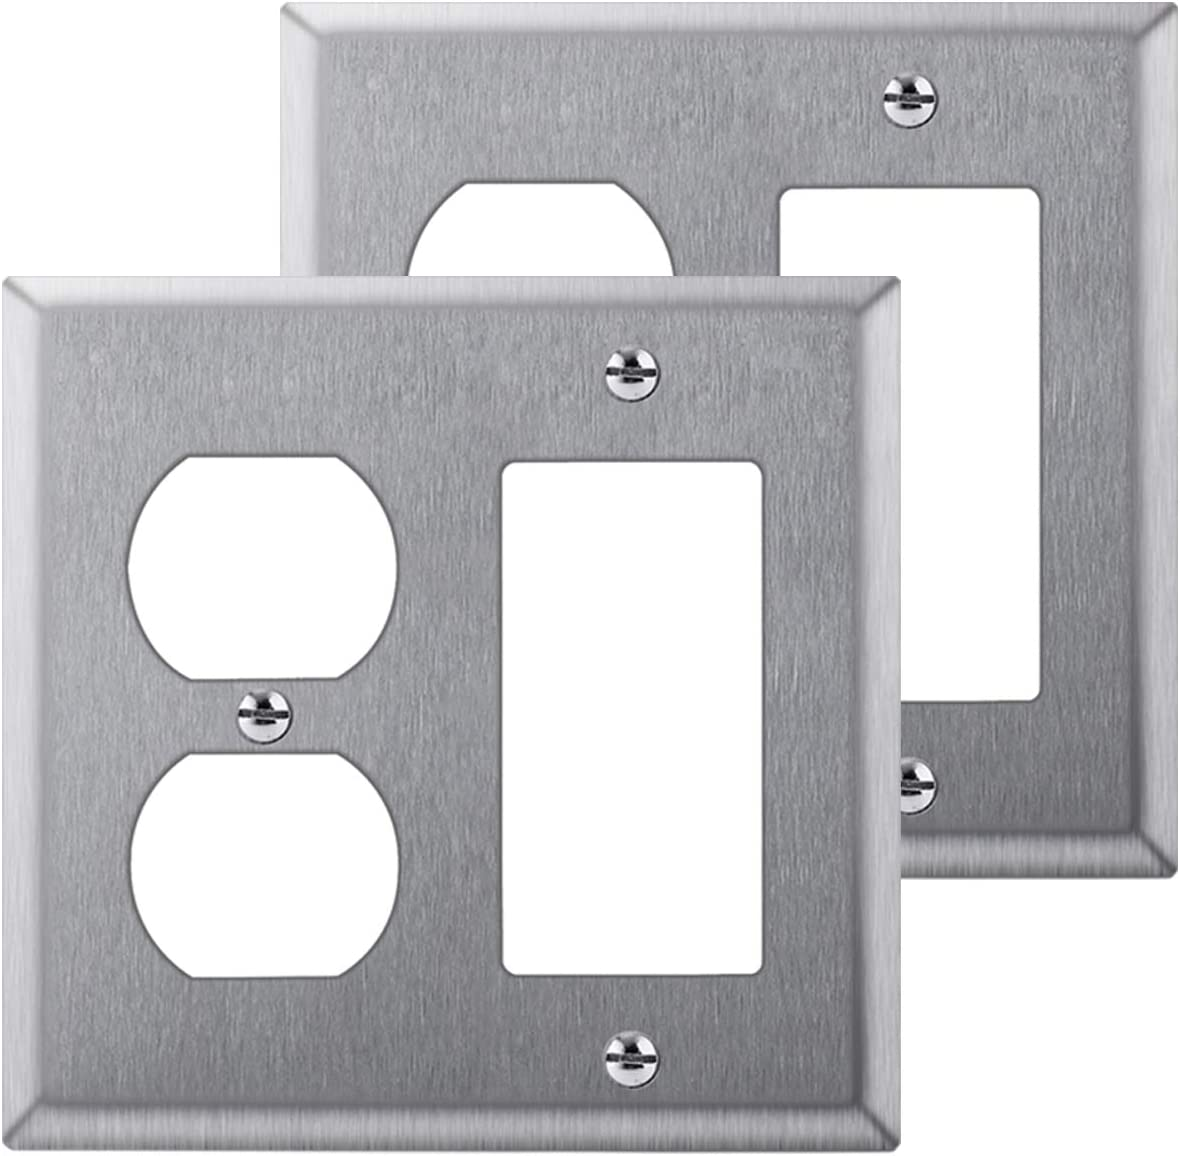 [2 Pack] BESTTEN 2-Gang Combination Metal Wall Plate, 1-Duplex/1-Decor, Anti-Corrosion Stainless Steel Outlet and Switch Cover, Industrial Grade Stainless Steel, Standard Size, Silver